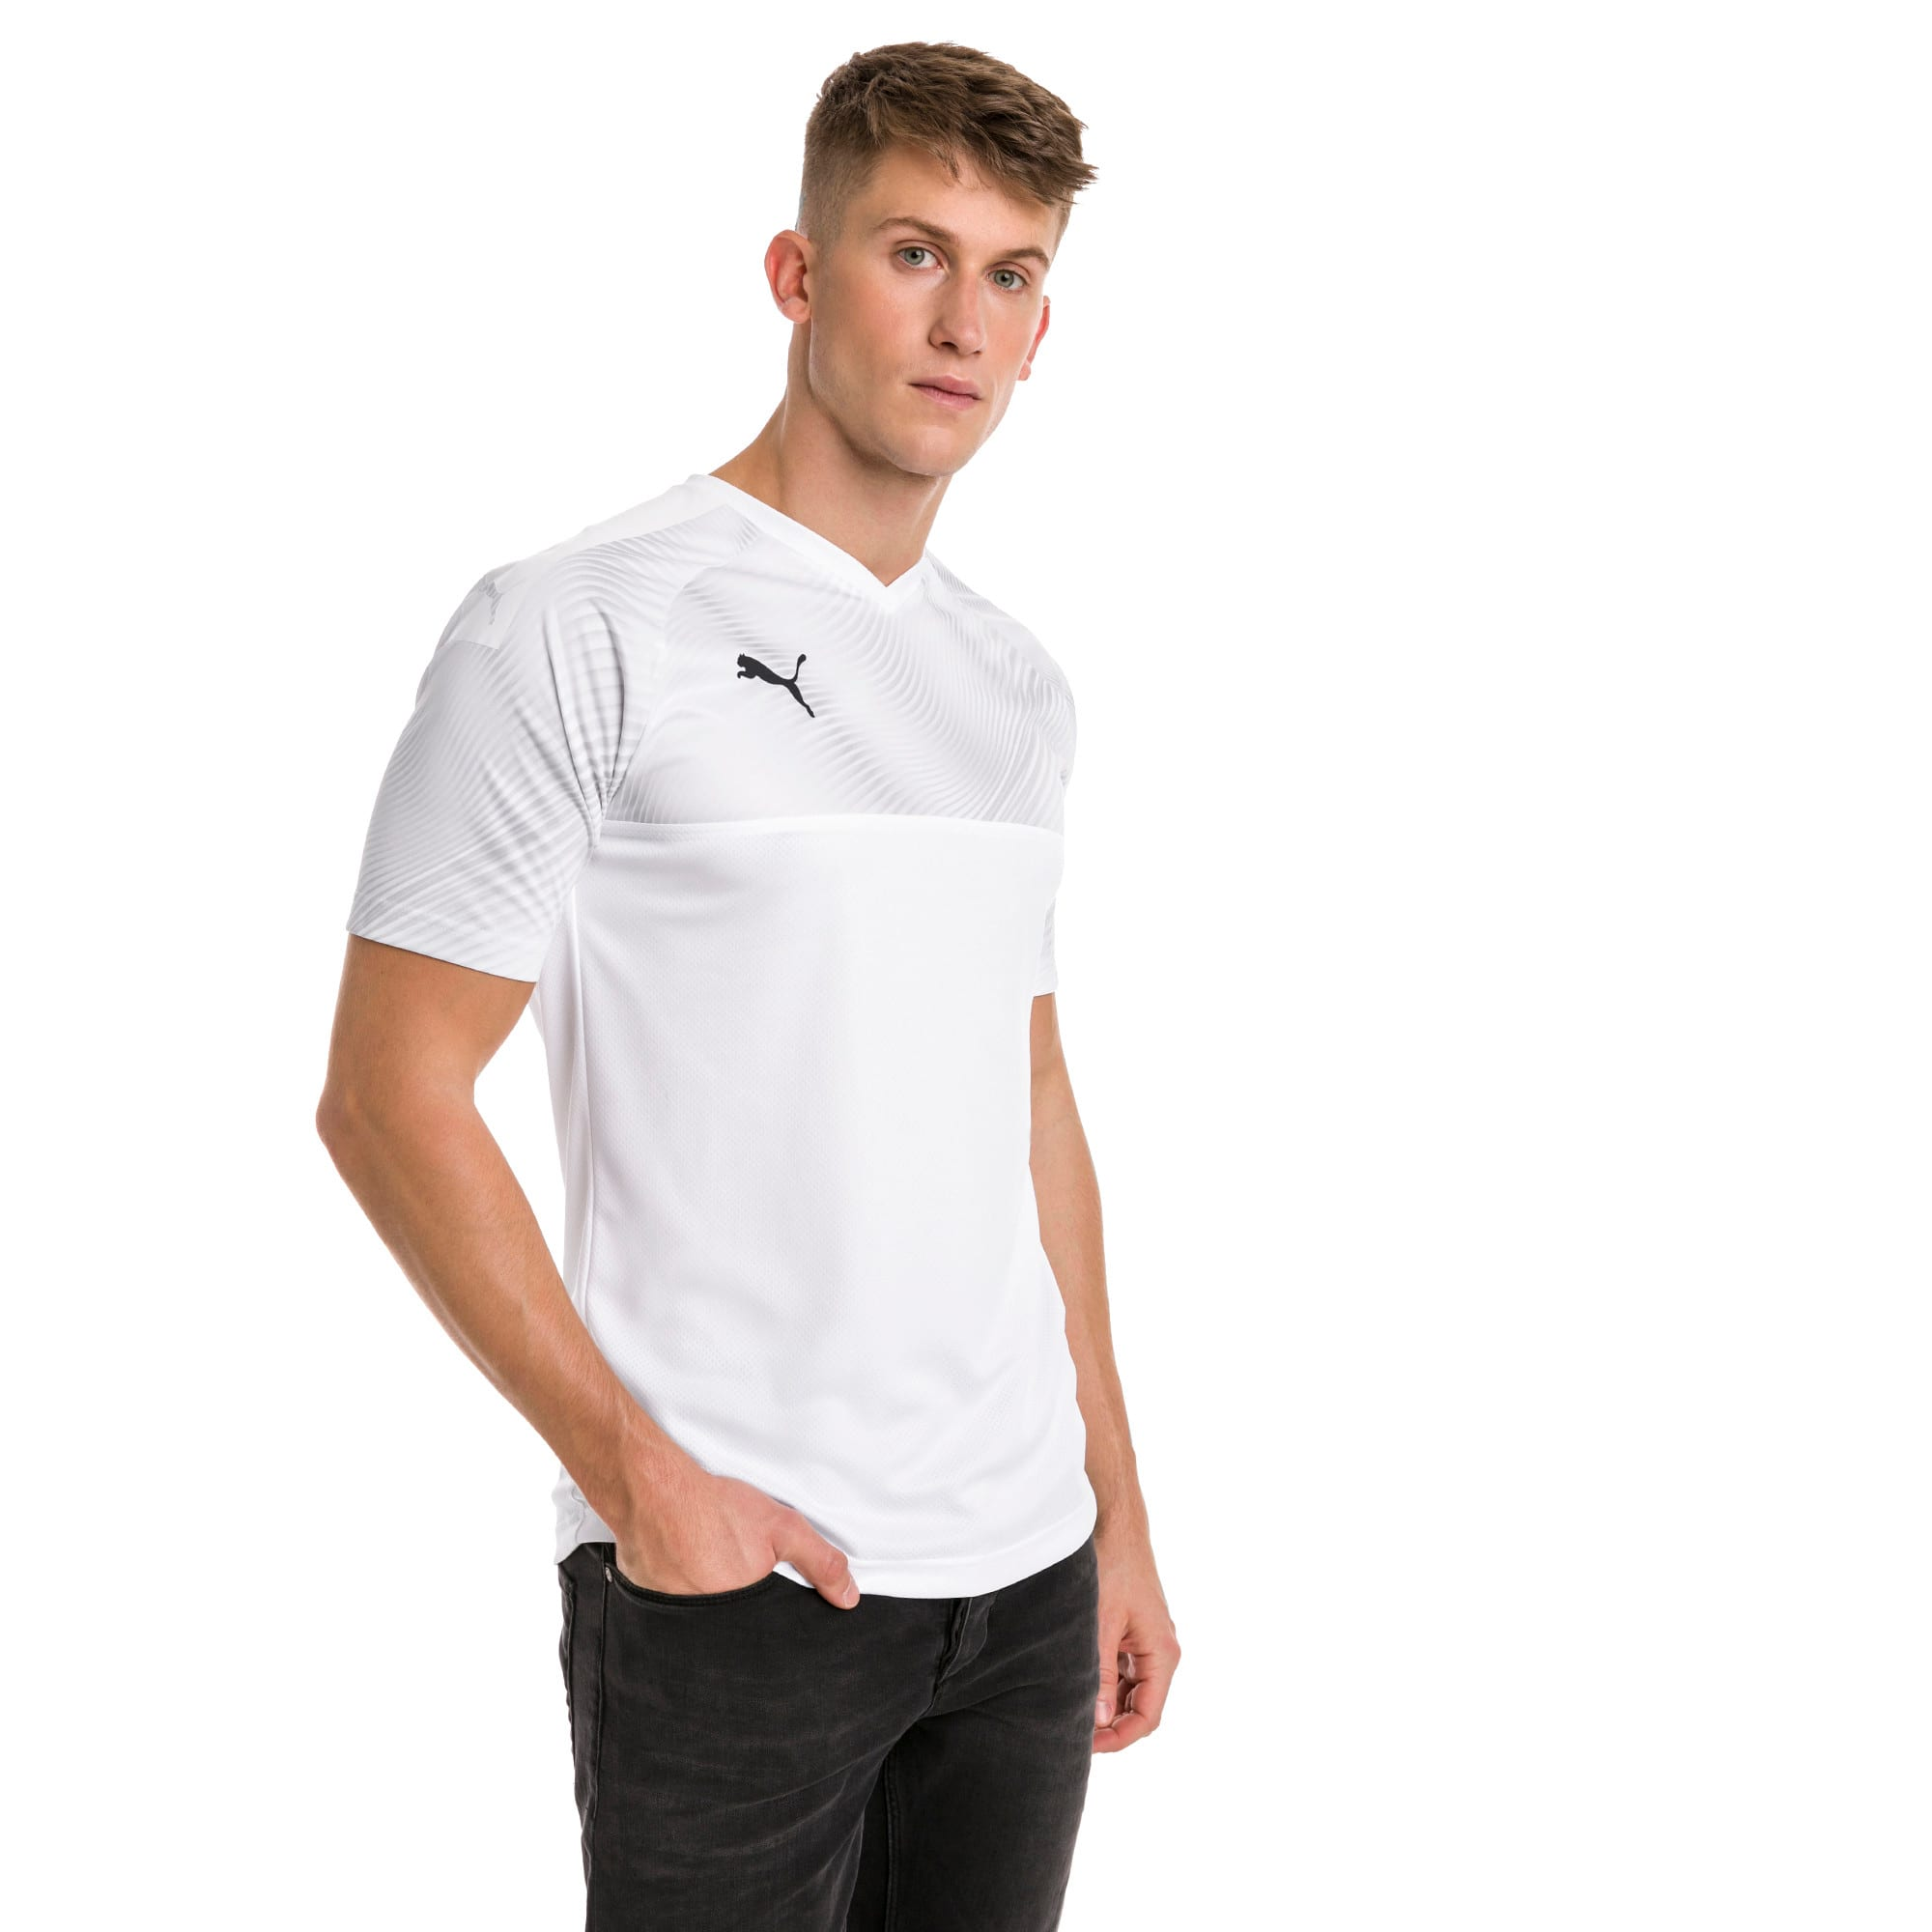 Thumbnail 1 of CUP Herren Fußball Trikot, Puma White-Puma Black, medium